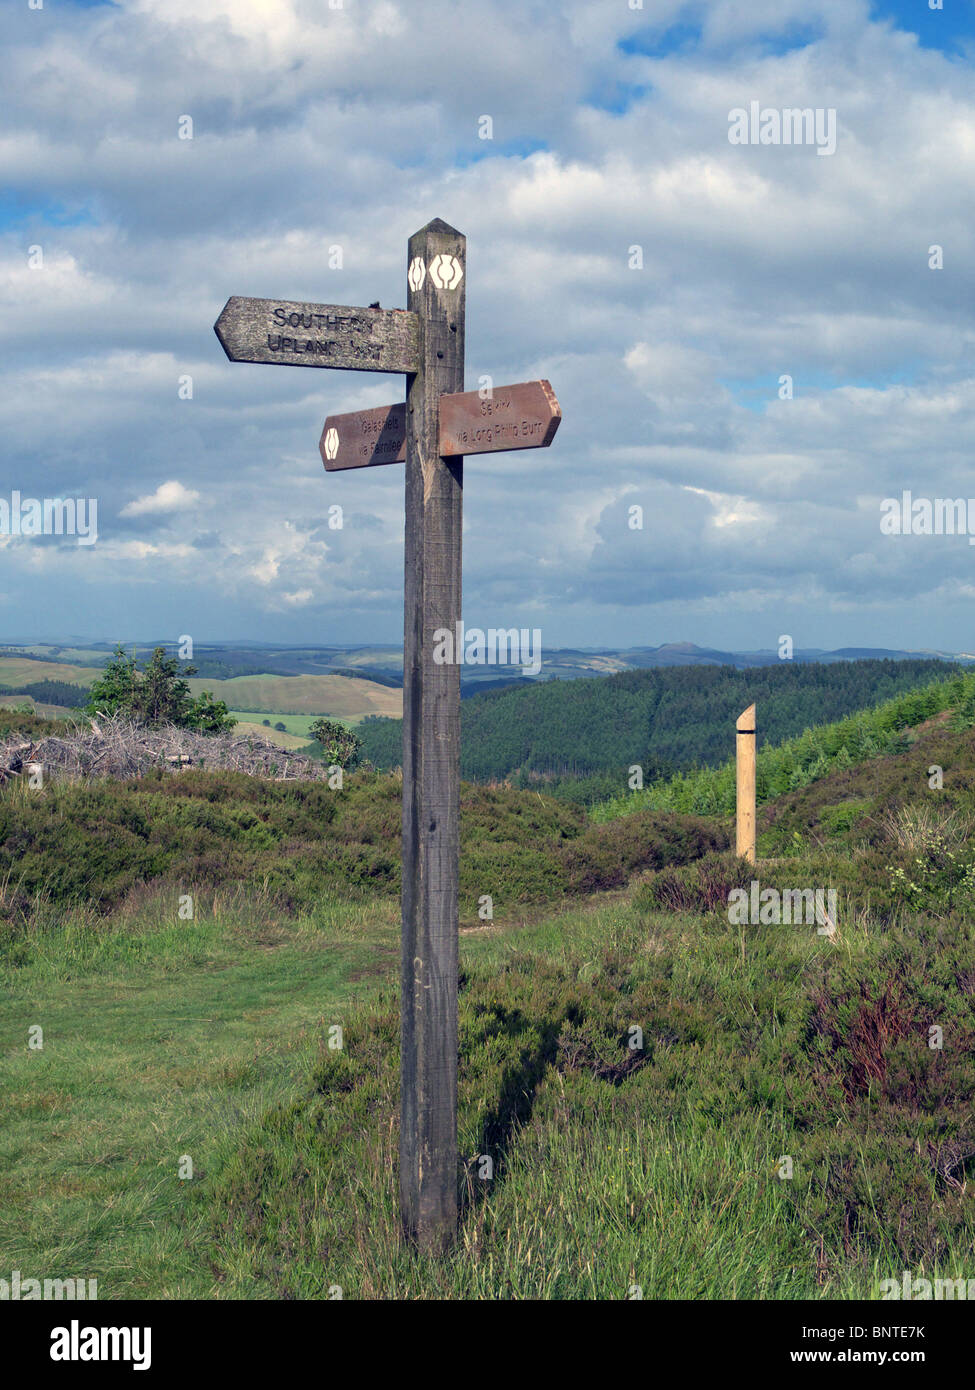 Wooden Fingerpost giving various Public Rights of Way part way up The Three Brethren Hill in the Tweed Valley Forest - Stock Image